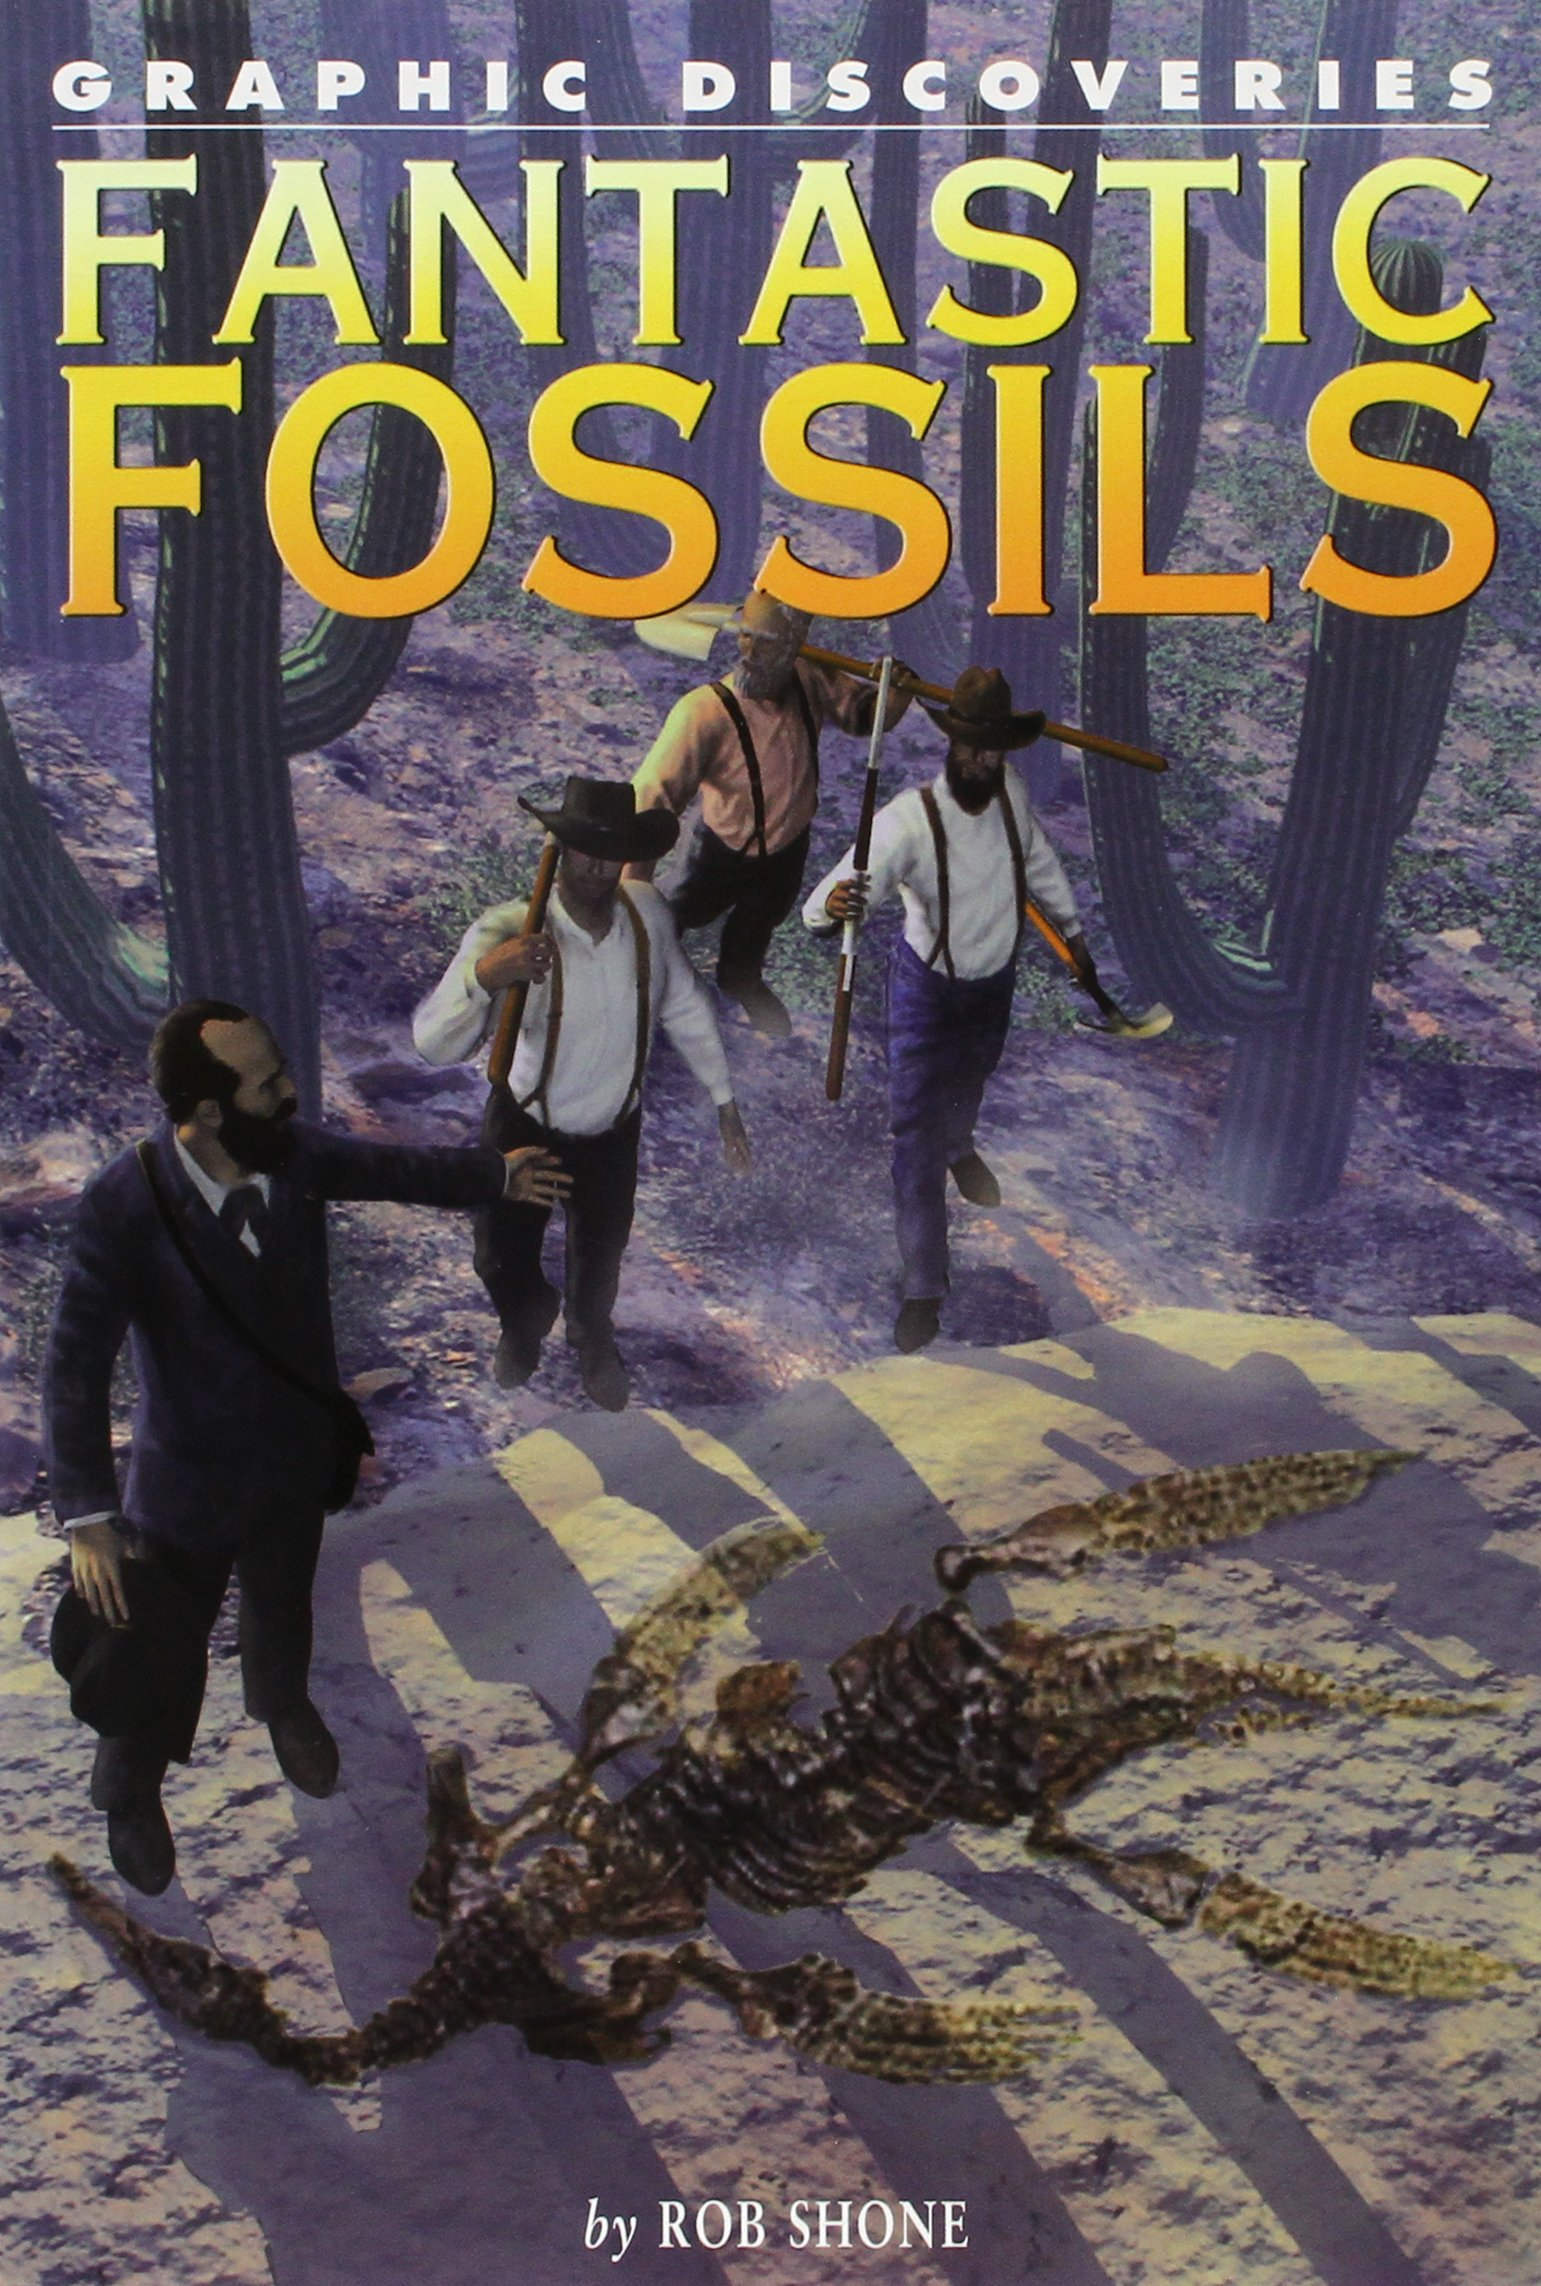 Fantastic Fossils (Graphic Discoveries)